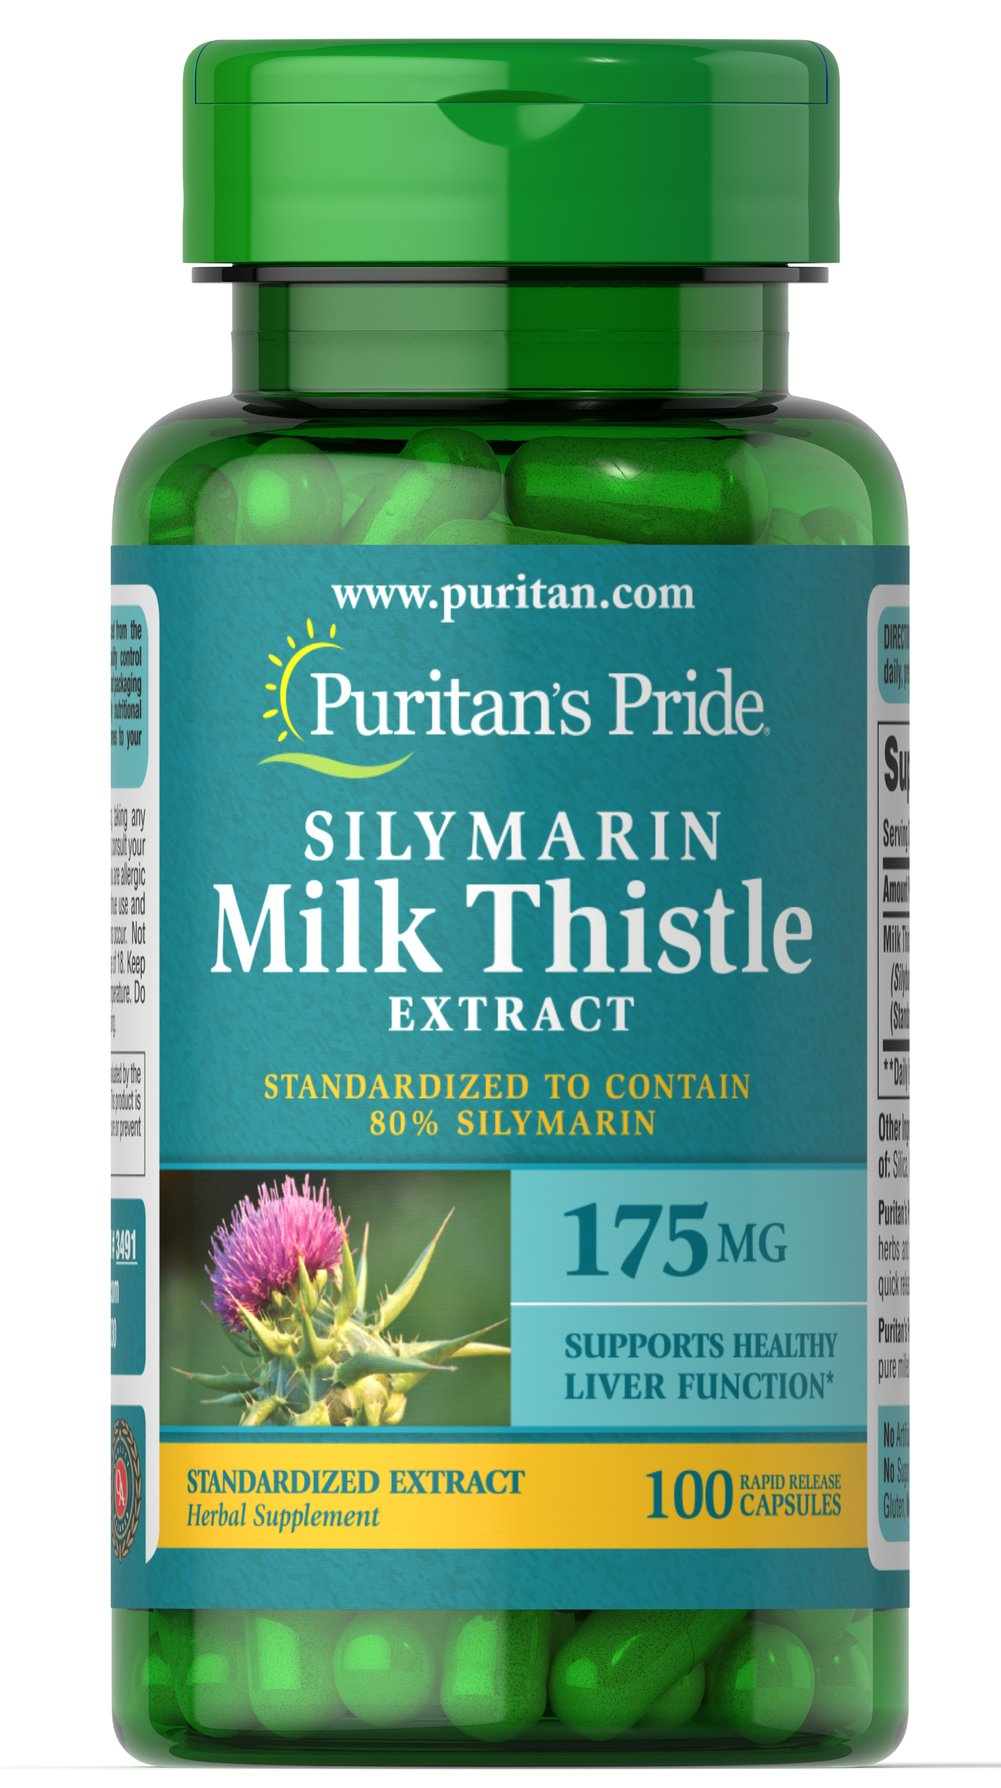 Milk Thistle Standardized 175 mg (Silymarin) <p>The exceptional benefits of Milk Thistle are due to its powerful antioxidant properties, which help to optimize health and well being.**</p><p>Puritan's Pride's Guarantee: We use only the finest quality herbs and spices. Each is screened and finely milled for quick release.<br /></p><p>Capsules may also be opened and prepared as a tea.</p> 100 Capsules 175 mg $14.39